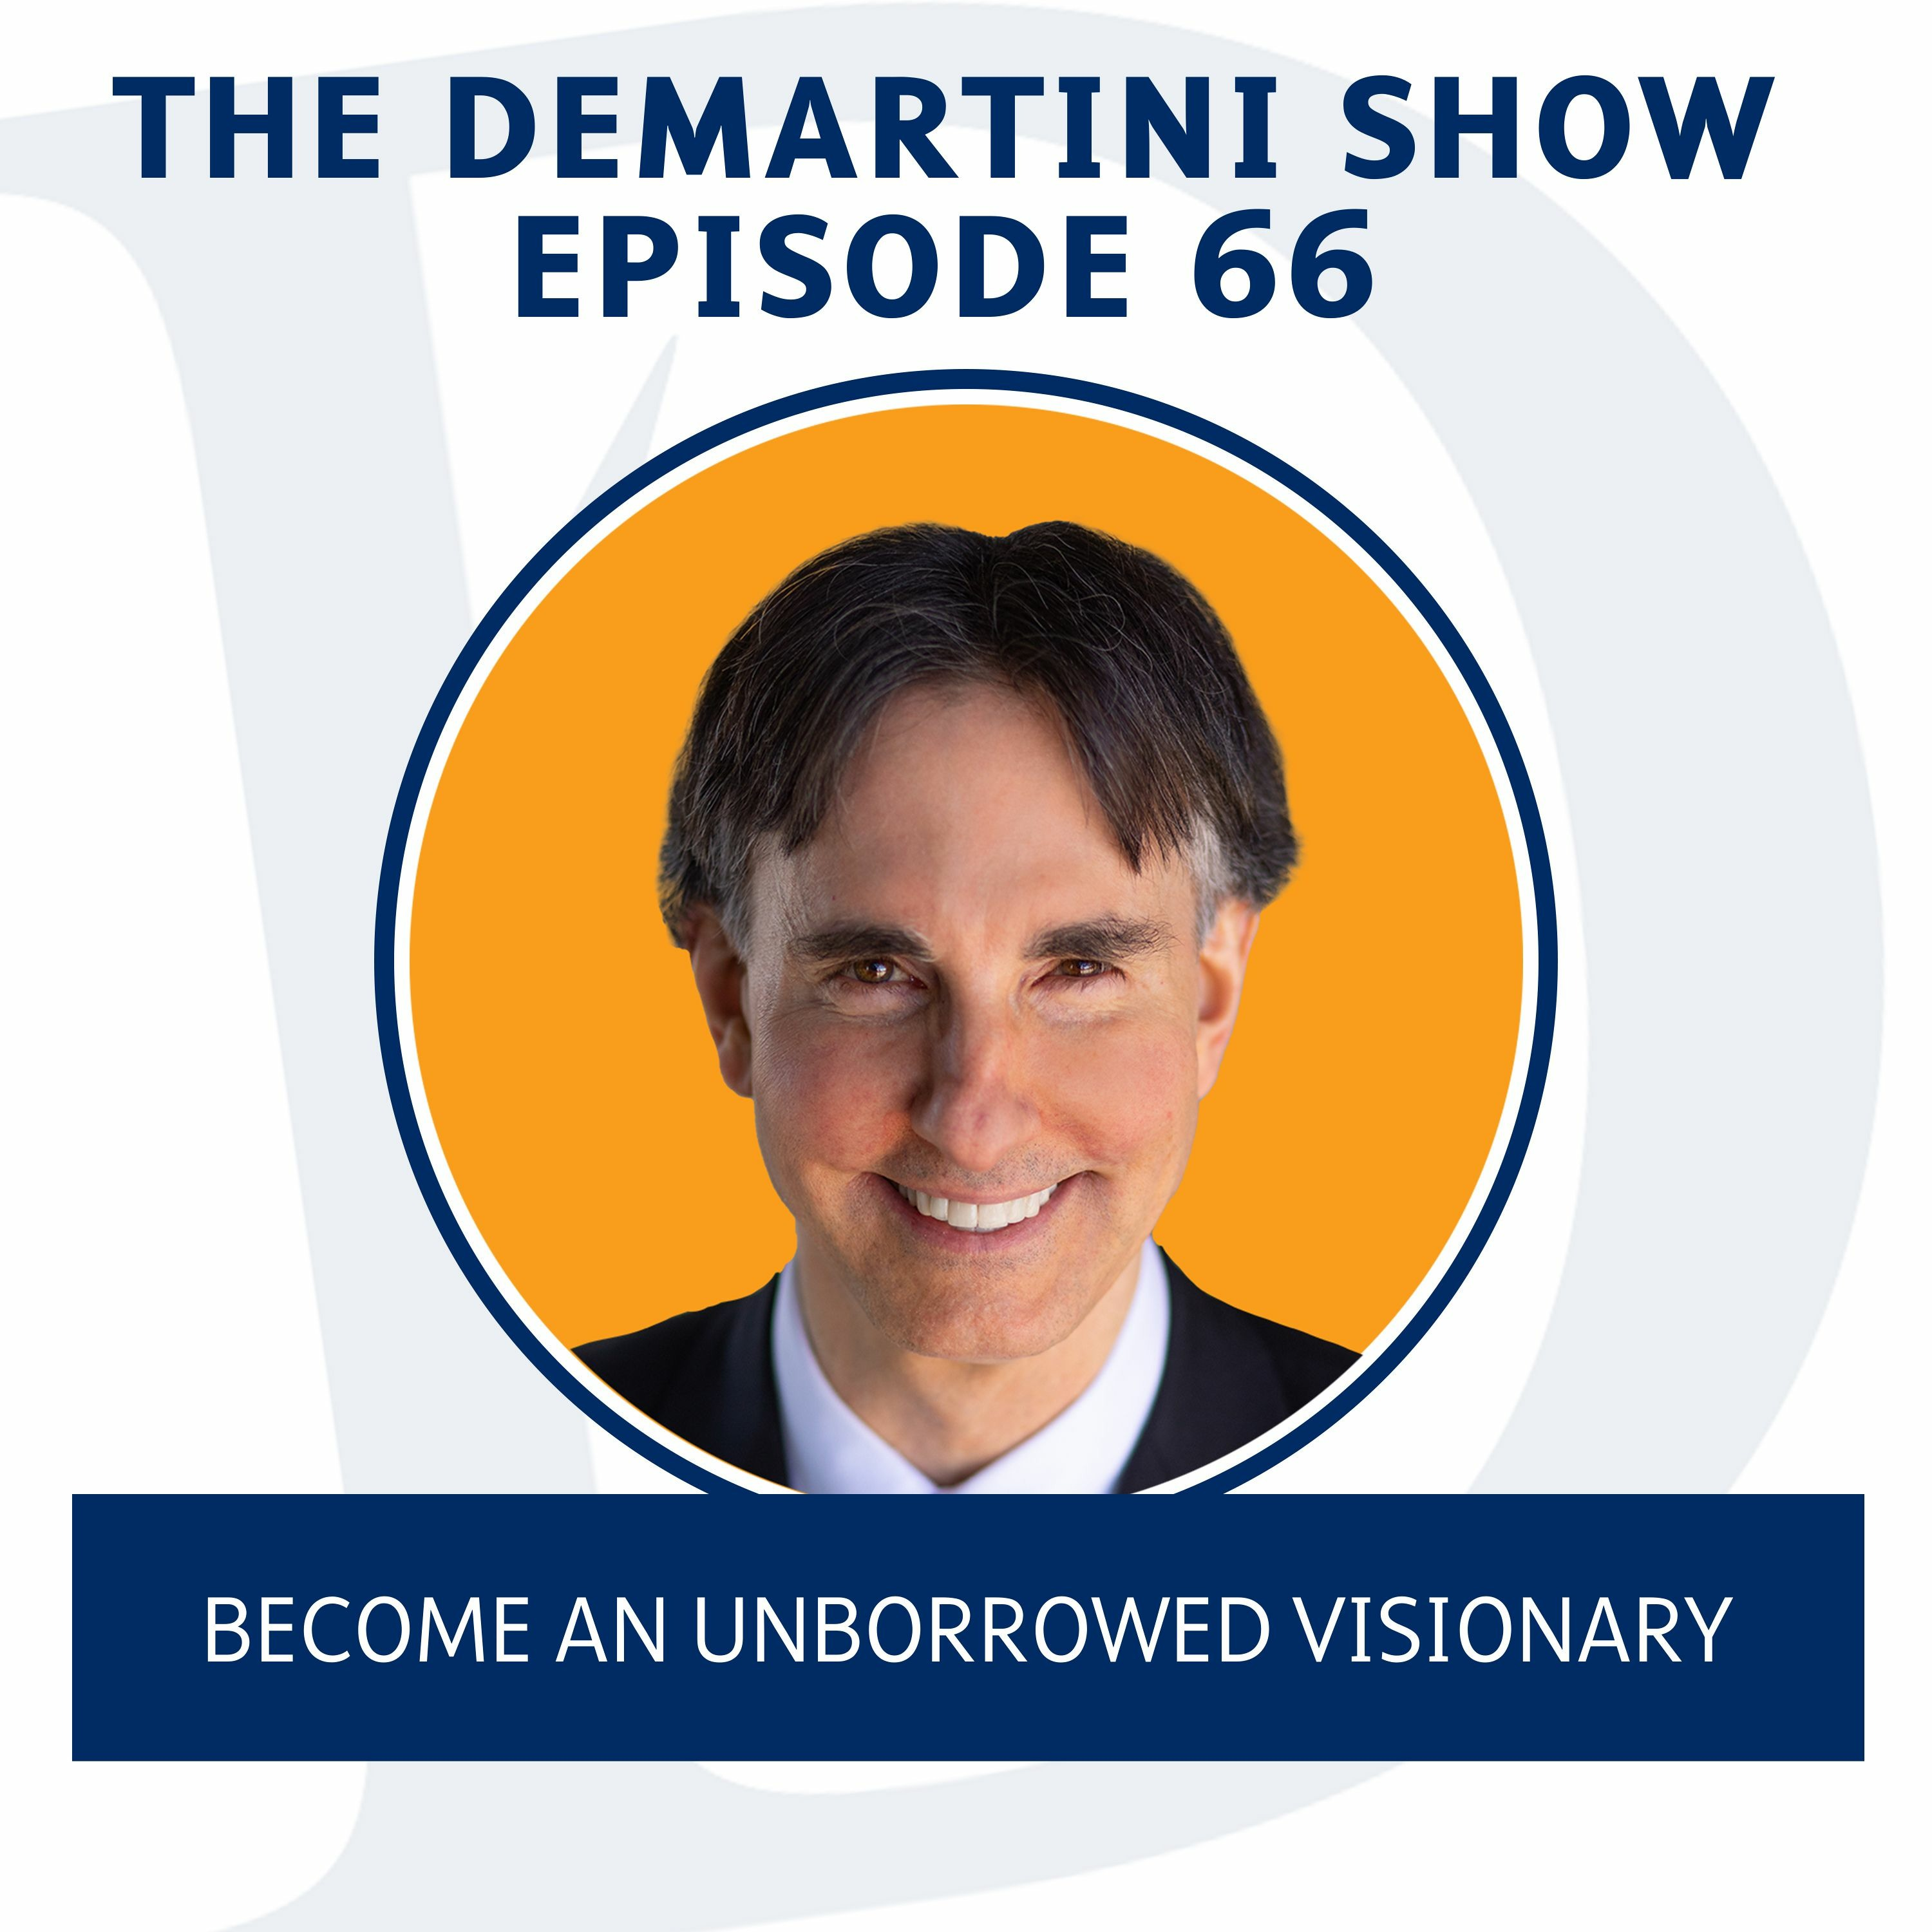 EP66 - Become An Unborrowed Visionary - The Demartini Show